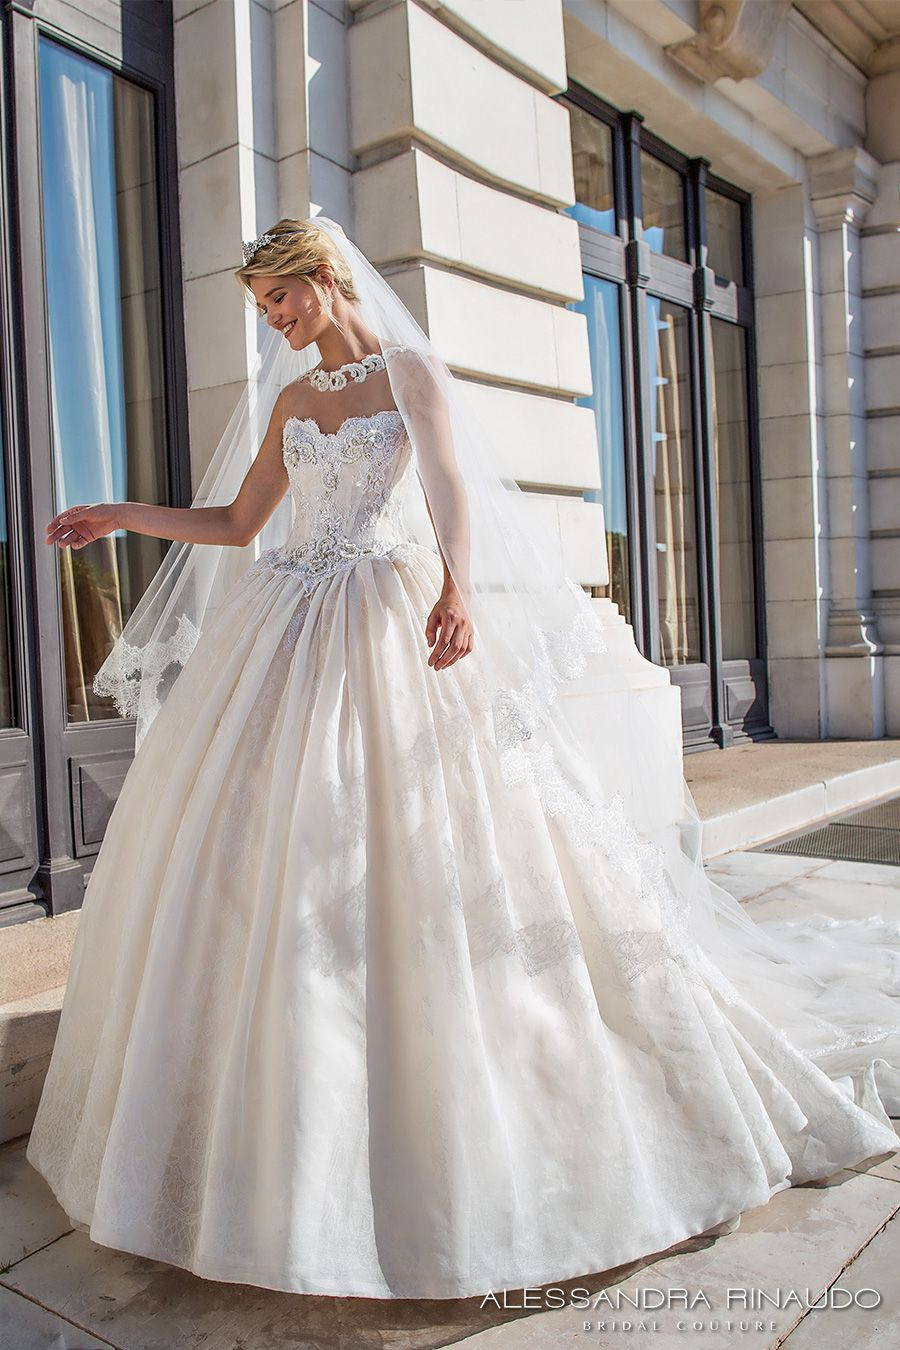 9f3a852becd alessandra rinaudo 2017 bridal strapless sweetheart neckline bustier heavily  embellished bodice princess ball gown wedding dress racer back royal long  train ...